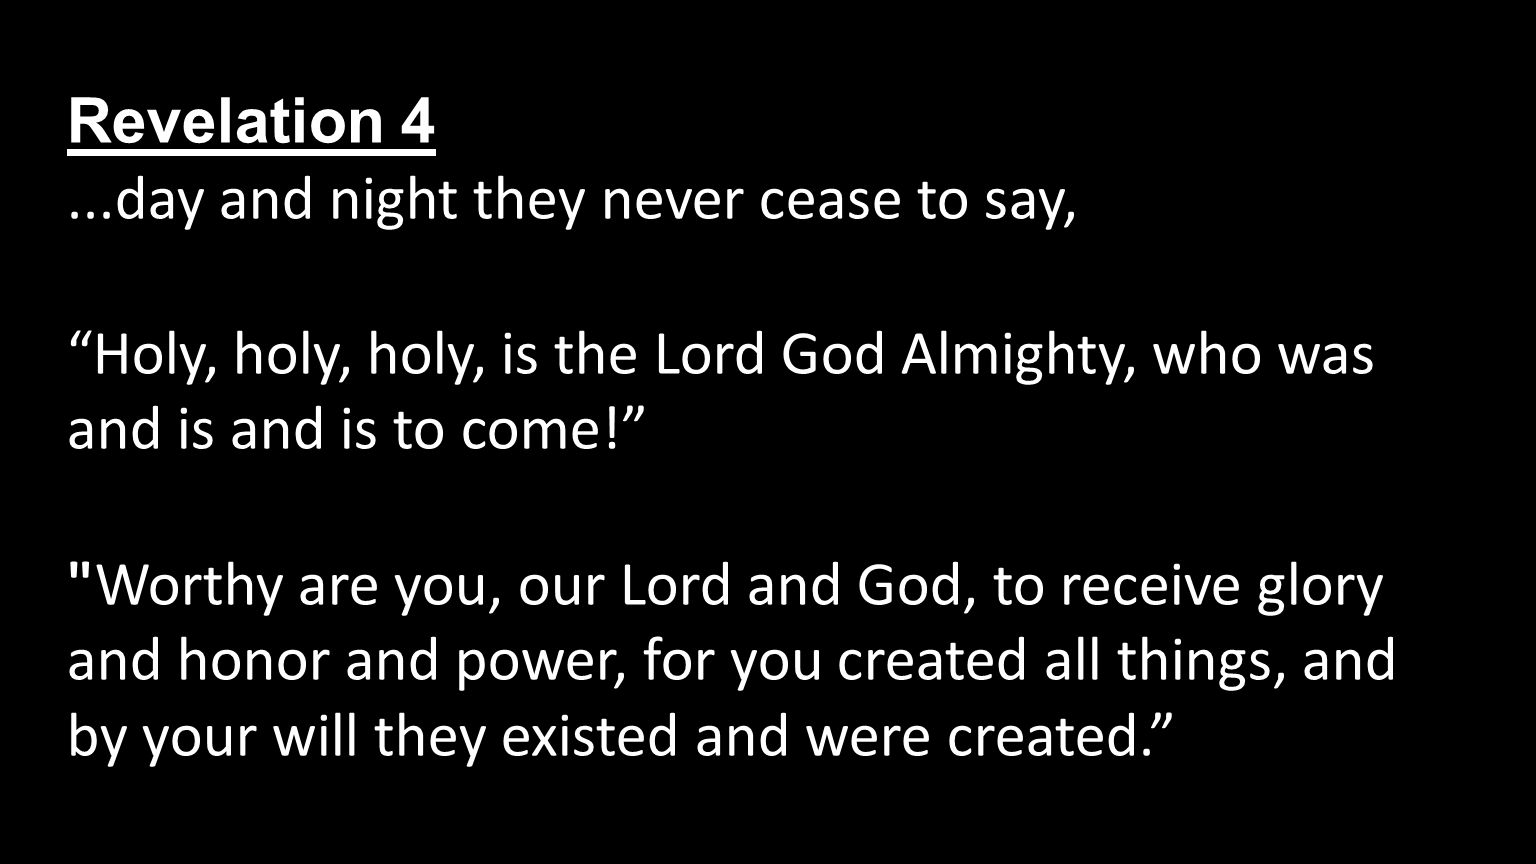 Revelation 4 ...day and night they never cease to say, Holy, holy, holy, is the Lord God Almighty, who was and is and is to come!